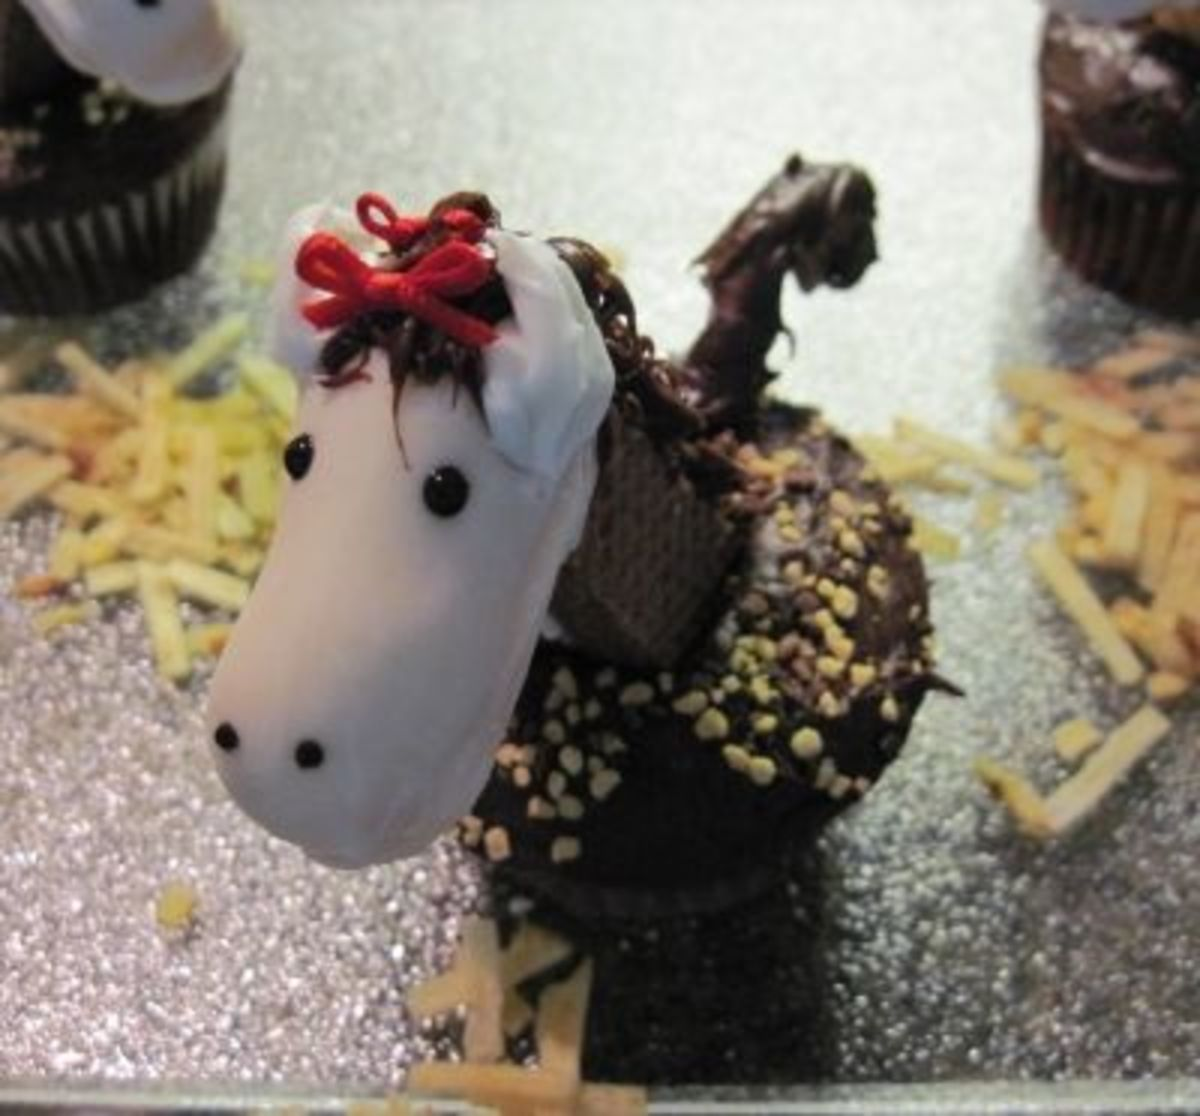 We added Red Bows on our Horse Cupcakes